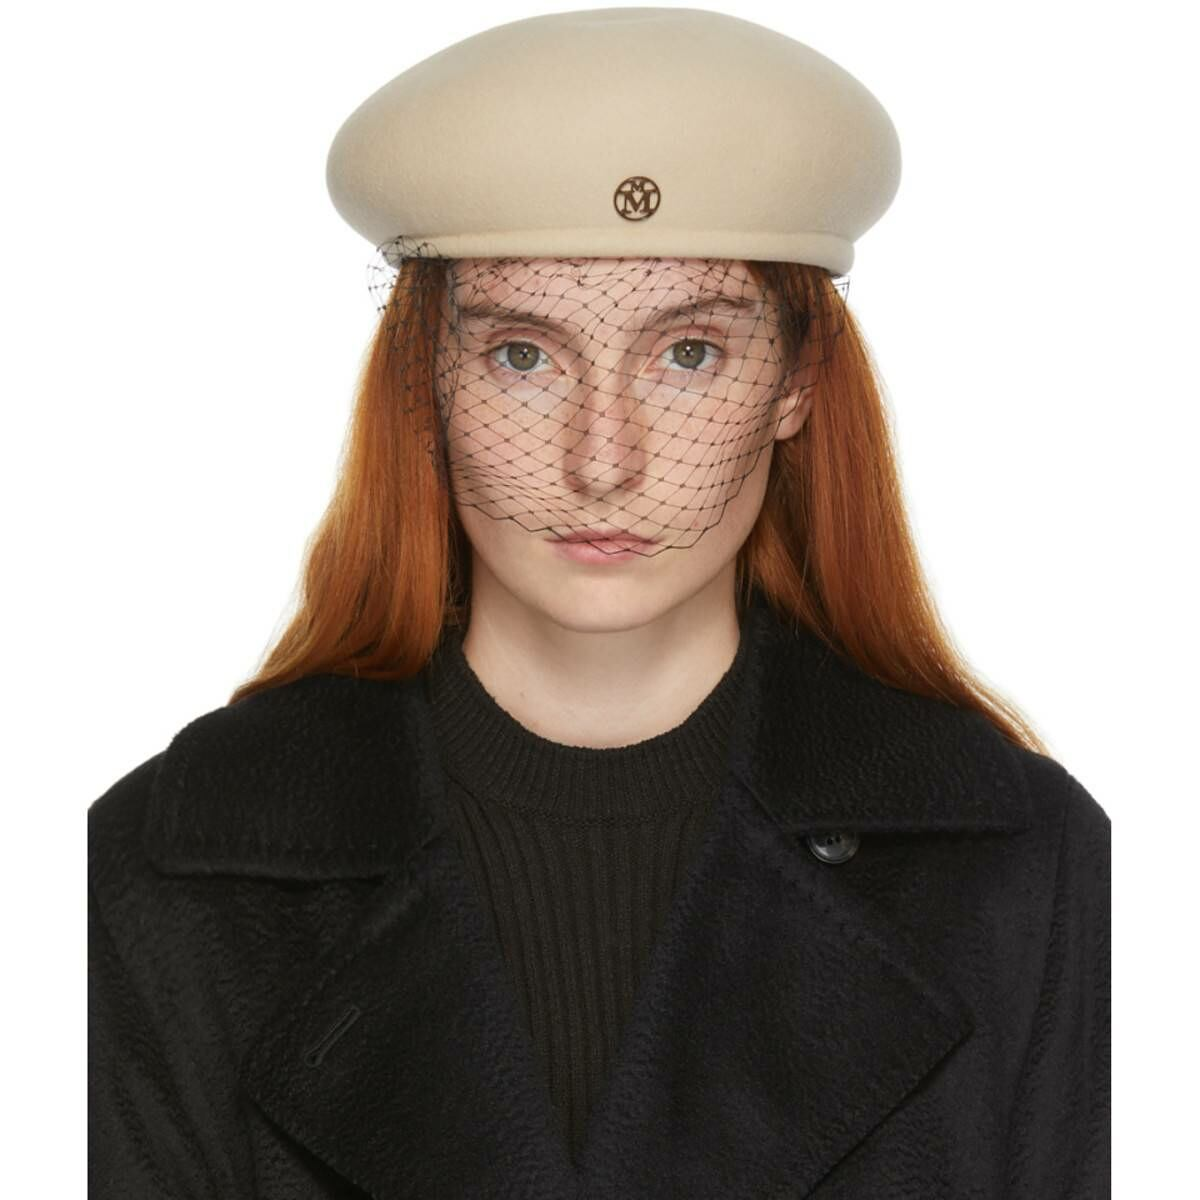 Maison Michel Beige Felt Veil Bonnie Cap Ssense USA WOMEN Women ACCESSORIES Womens CAPS